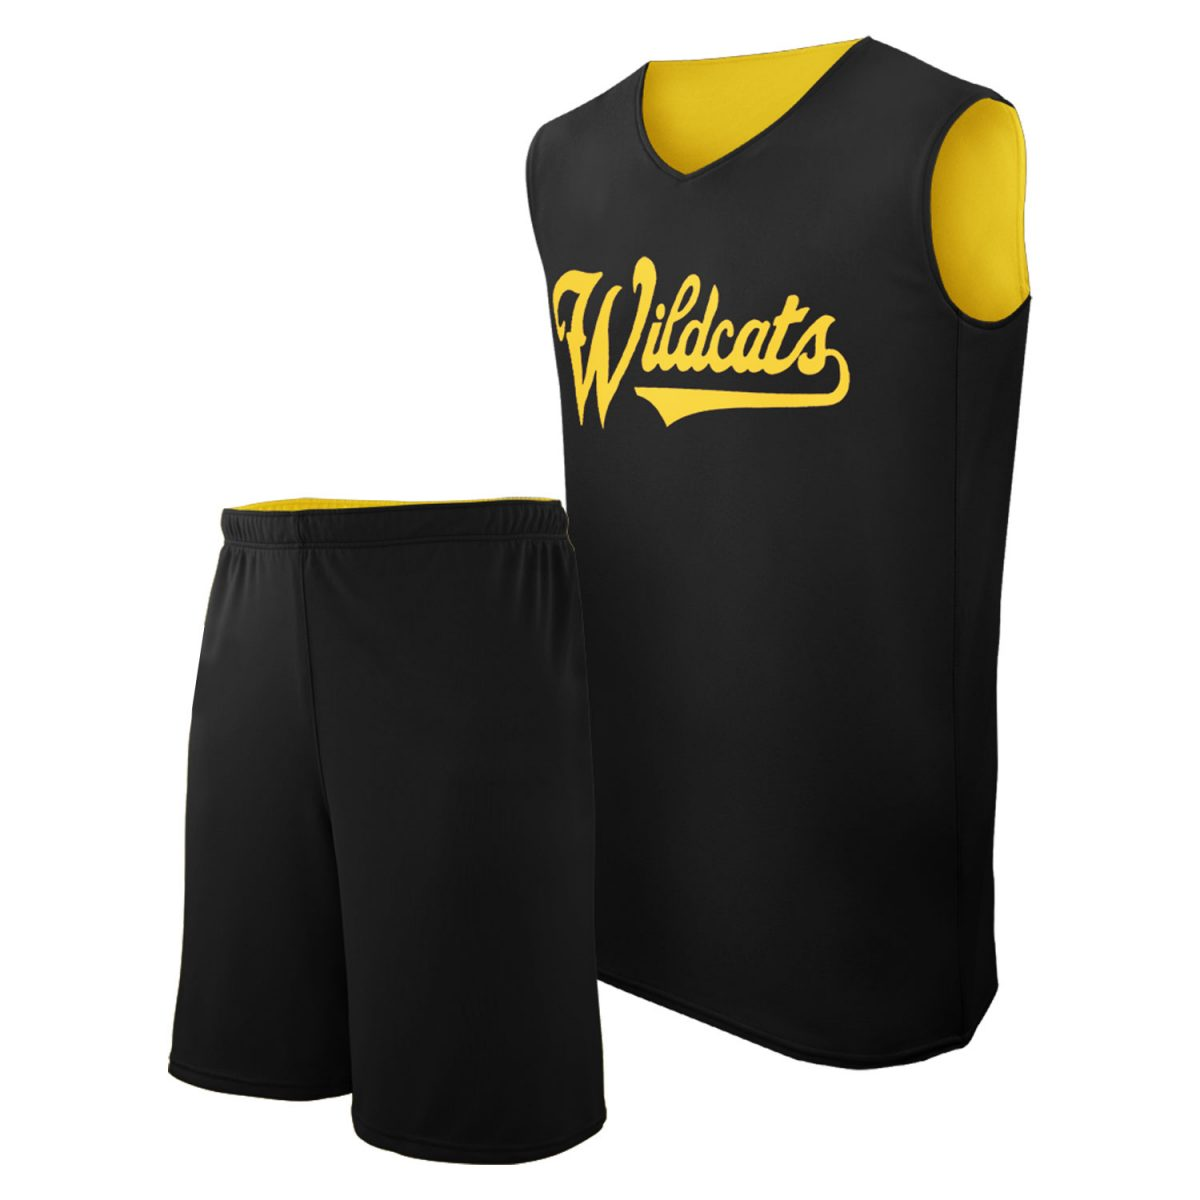 Boys Basketball Uniforms Manufacturers in Australia